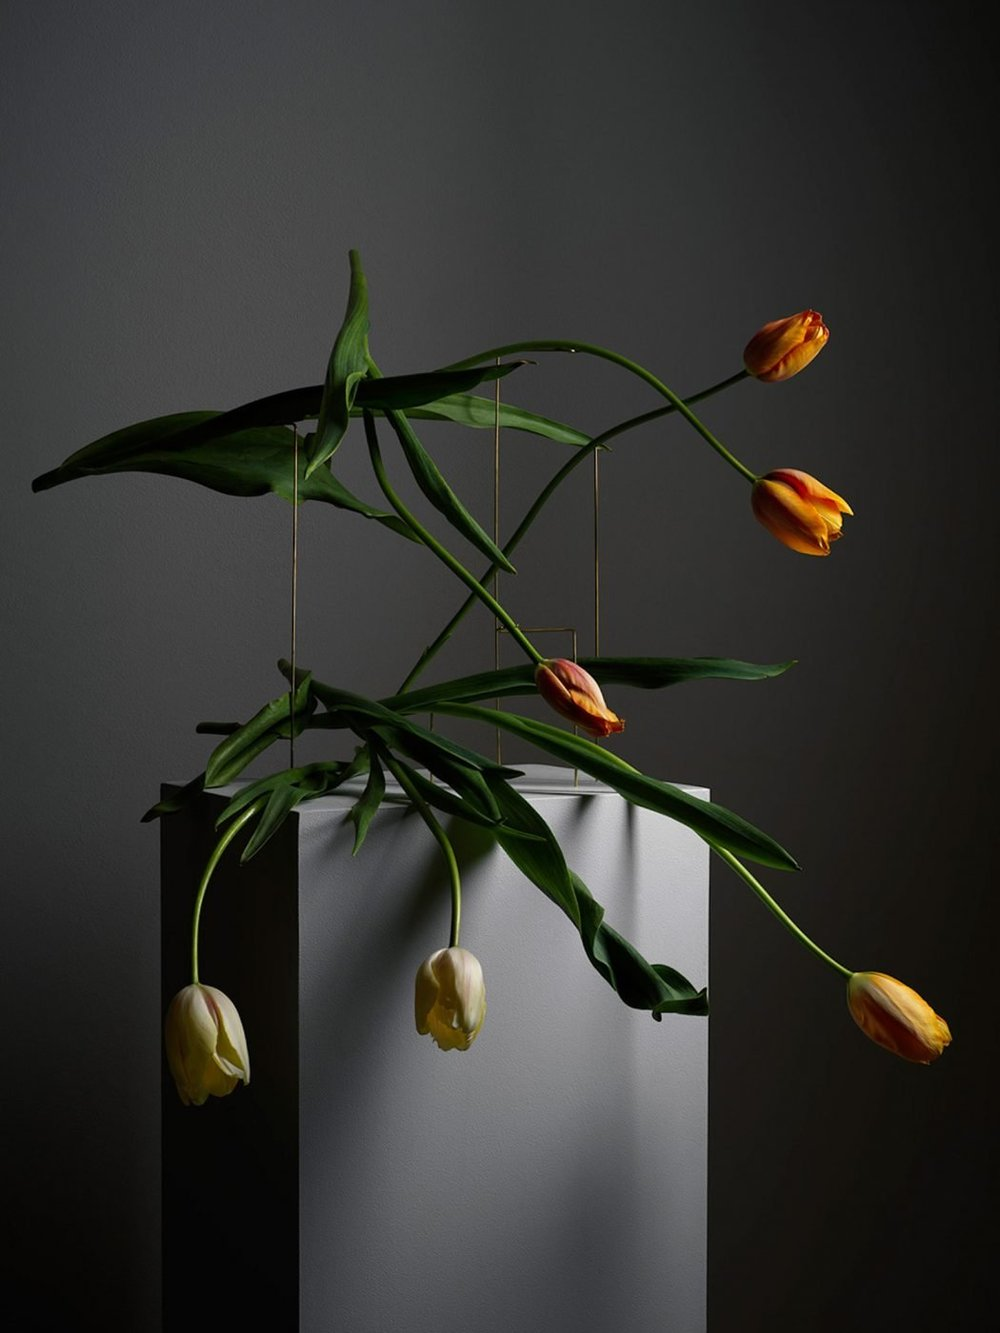 Tulip composition on grey background by Carl Kleiner